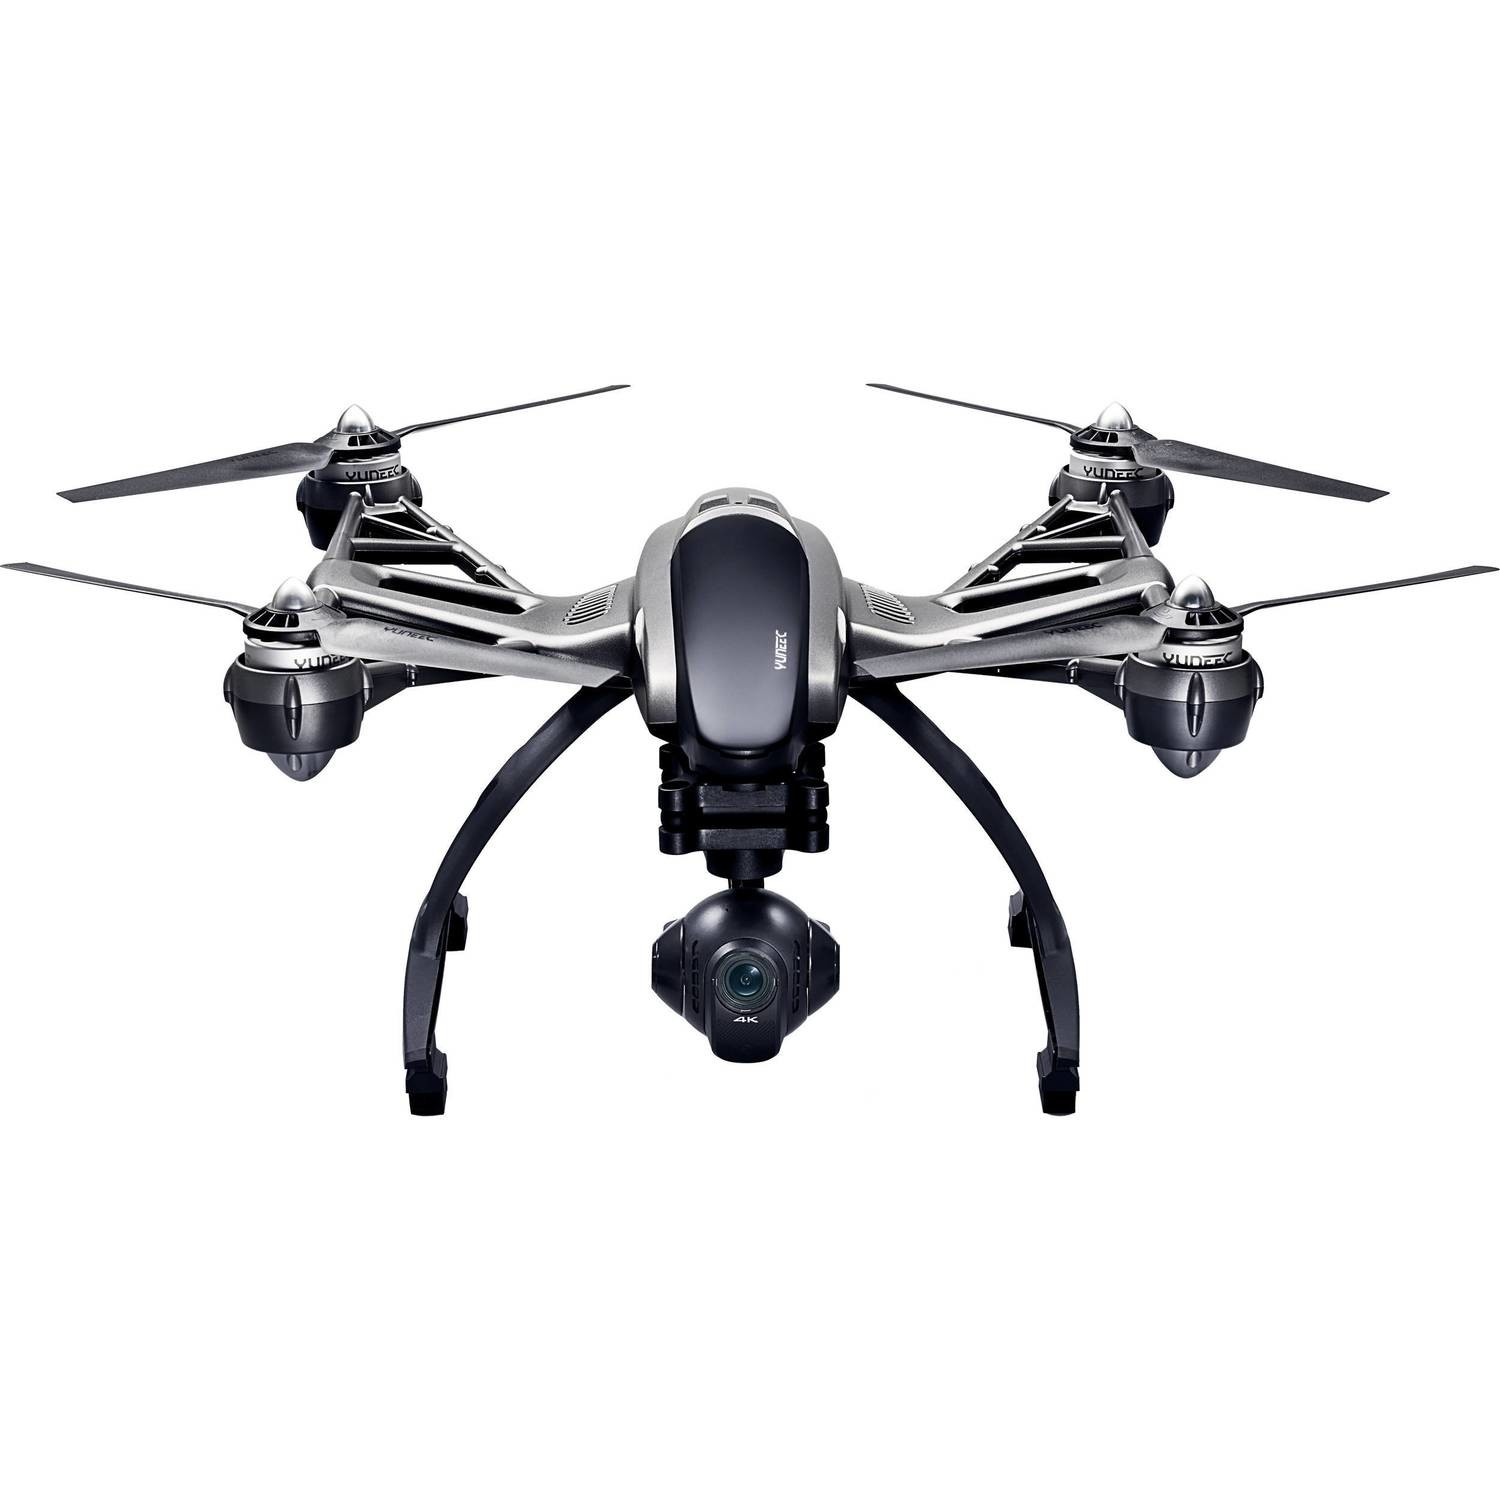 YUNEEC TYPHOON Q500 4K: MANUALI + REGISTRAZIONE D-FLIGHT PREMIUM